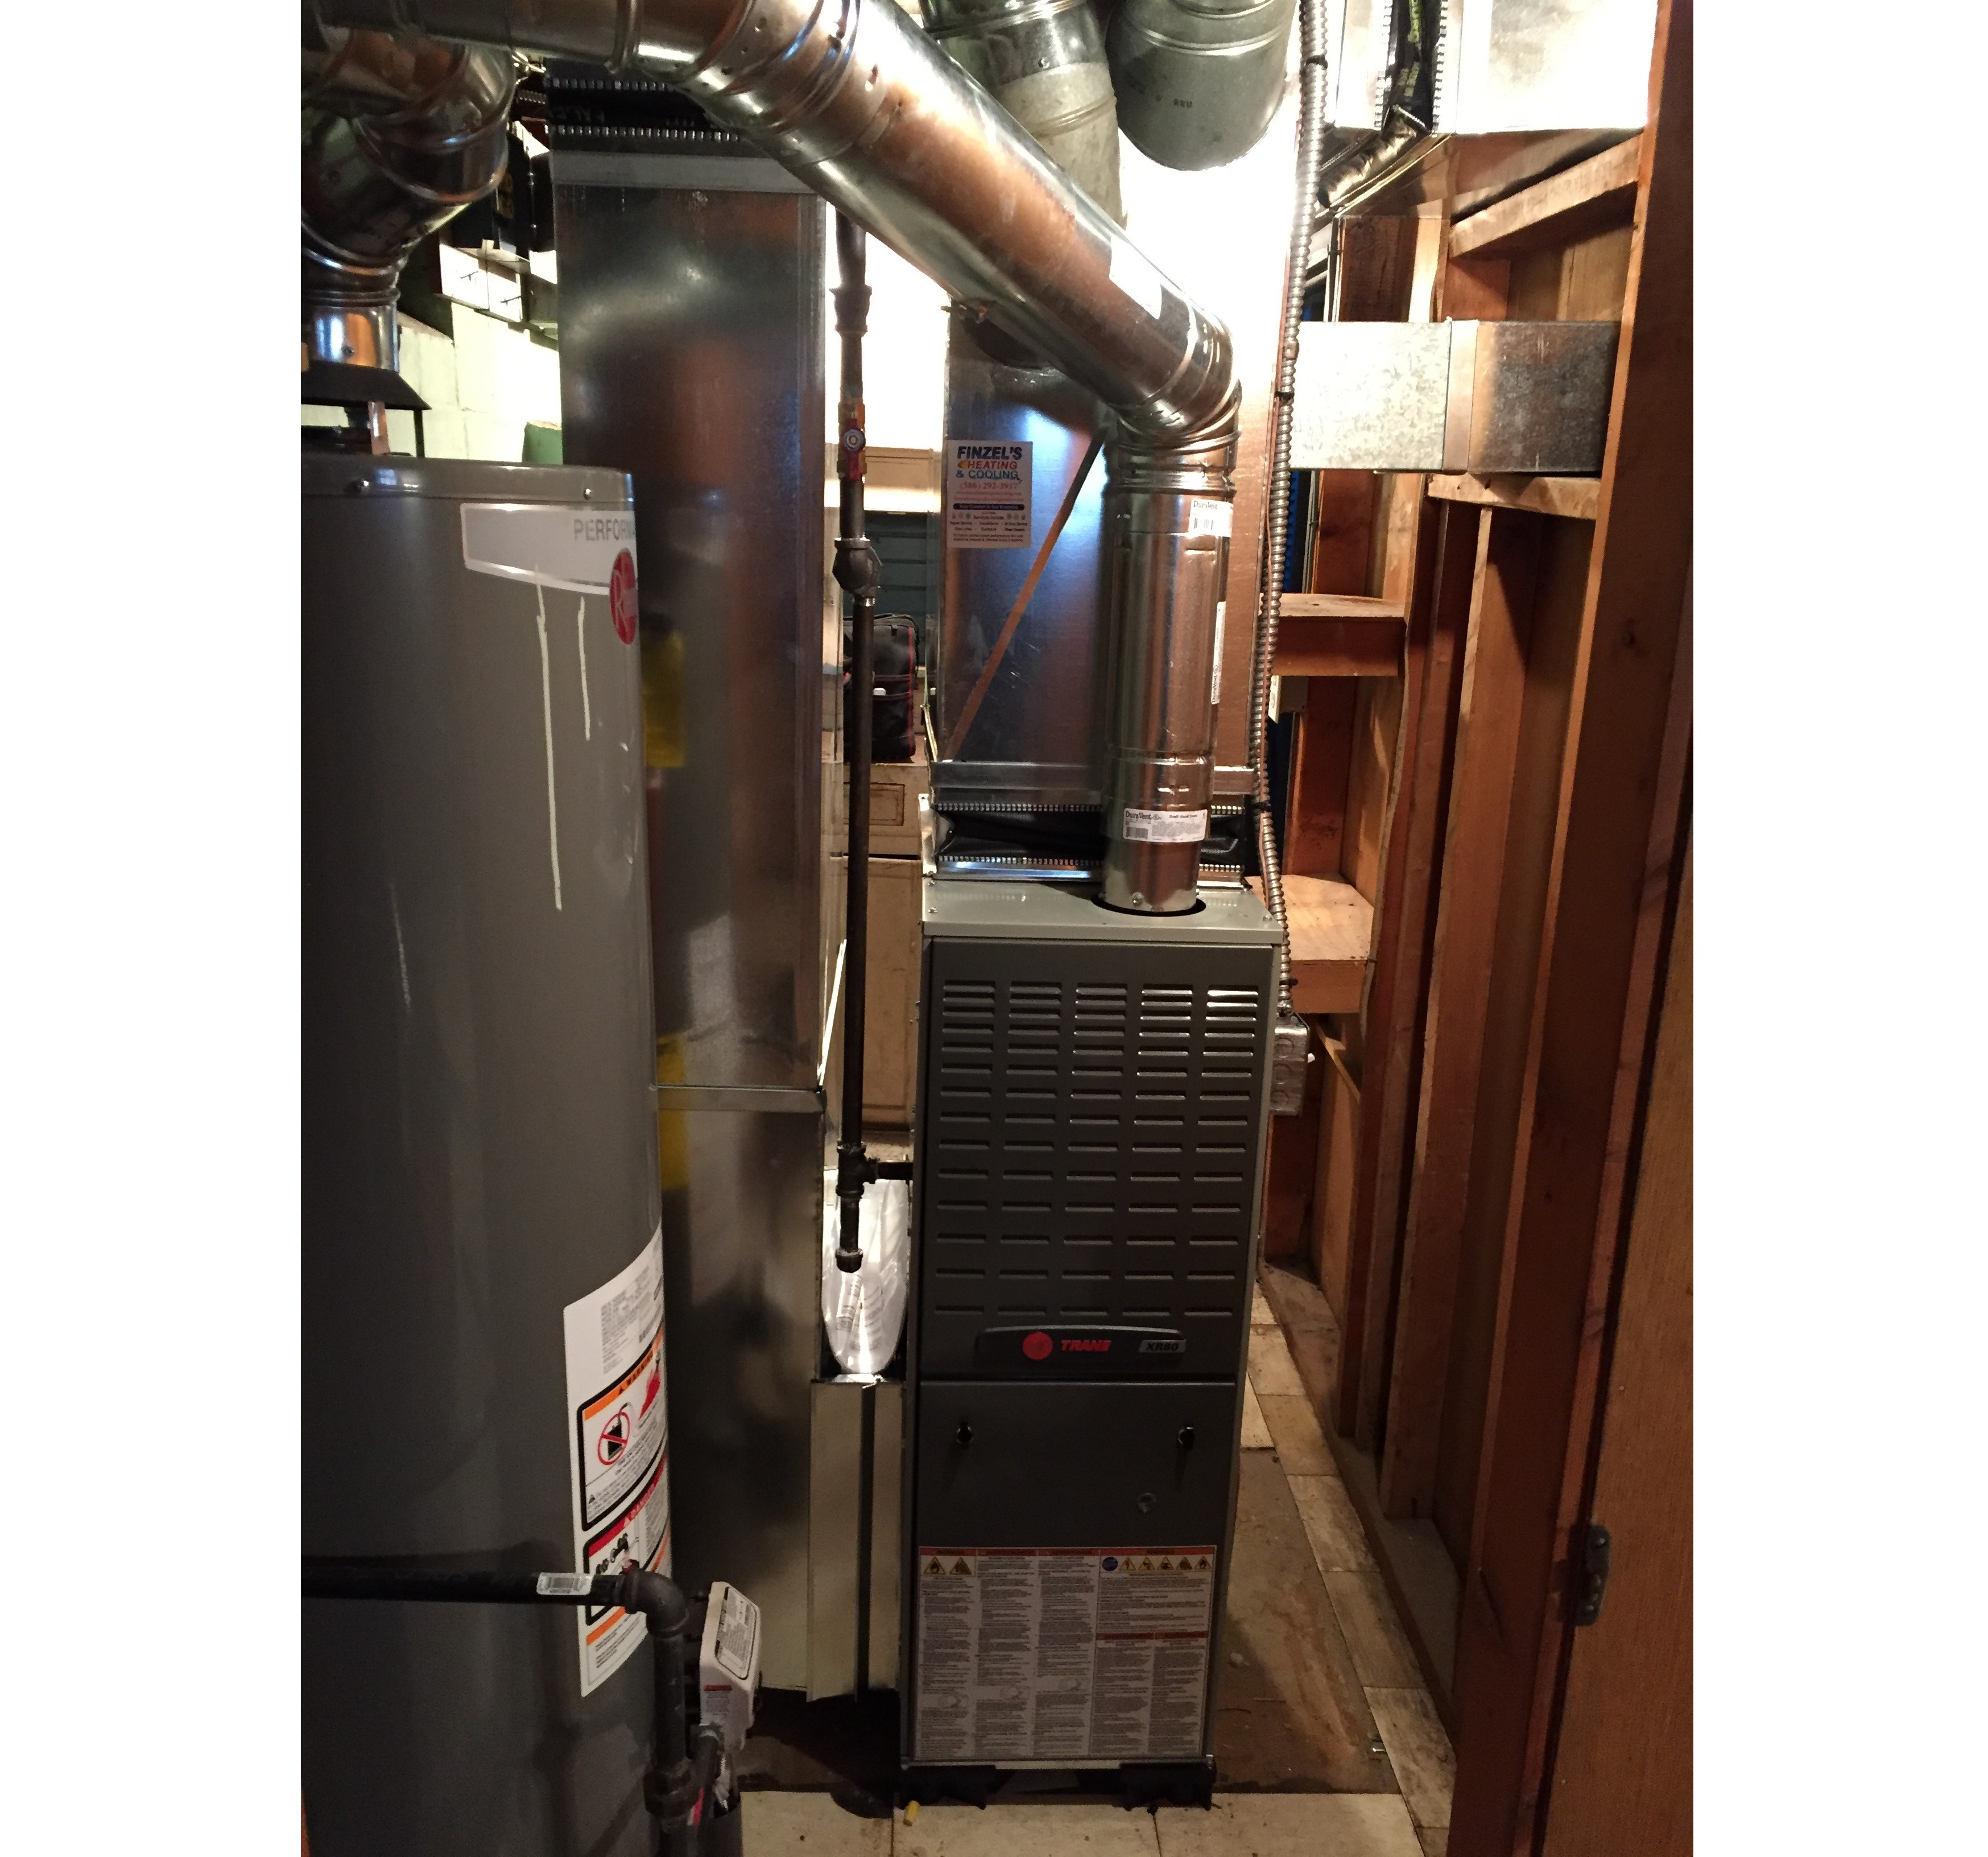 Heating and Cooling Services in Macomb Township, Clinton Township, and Chesterfield, MI